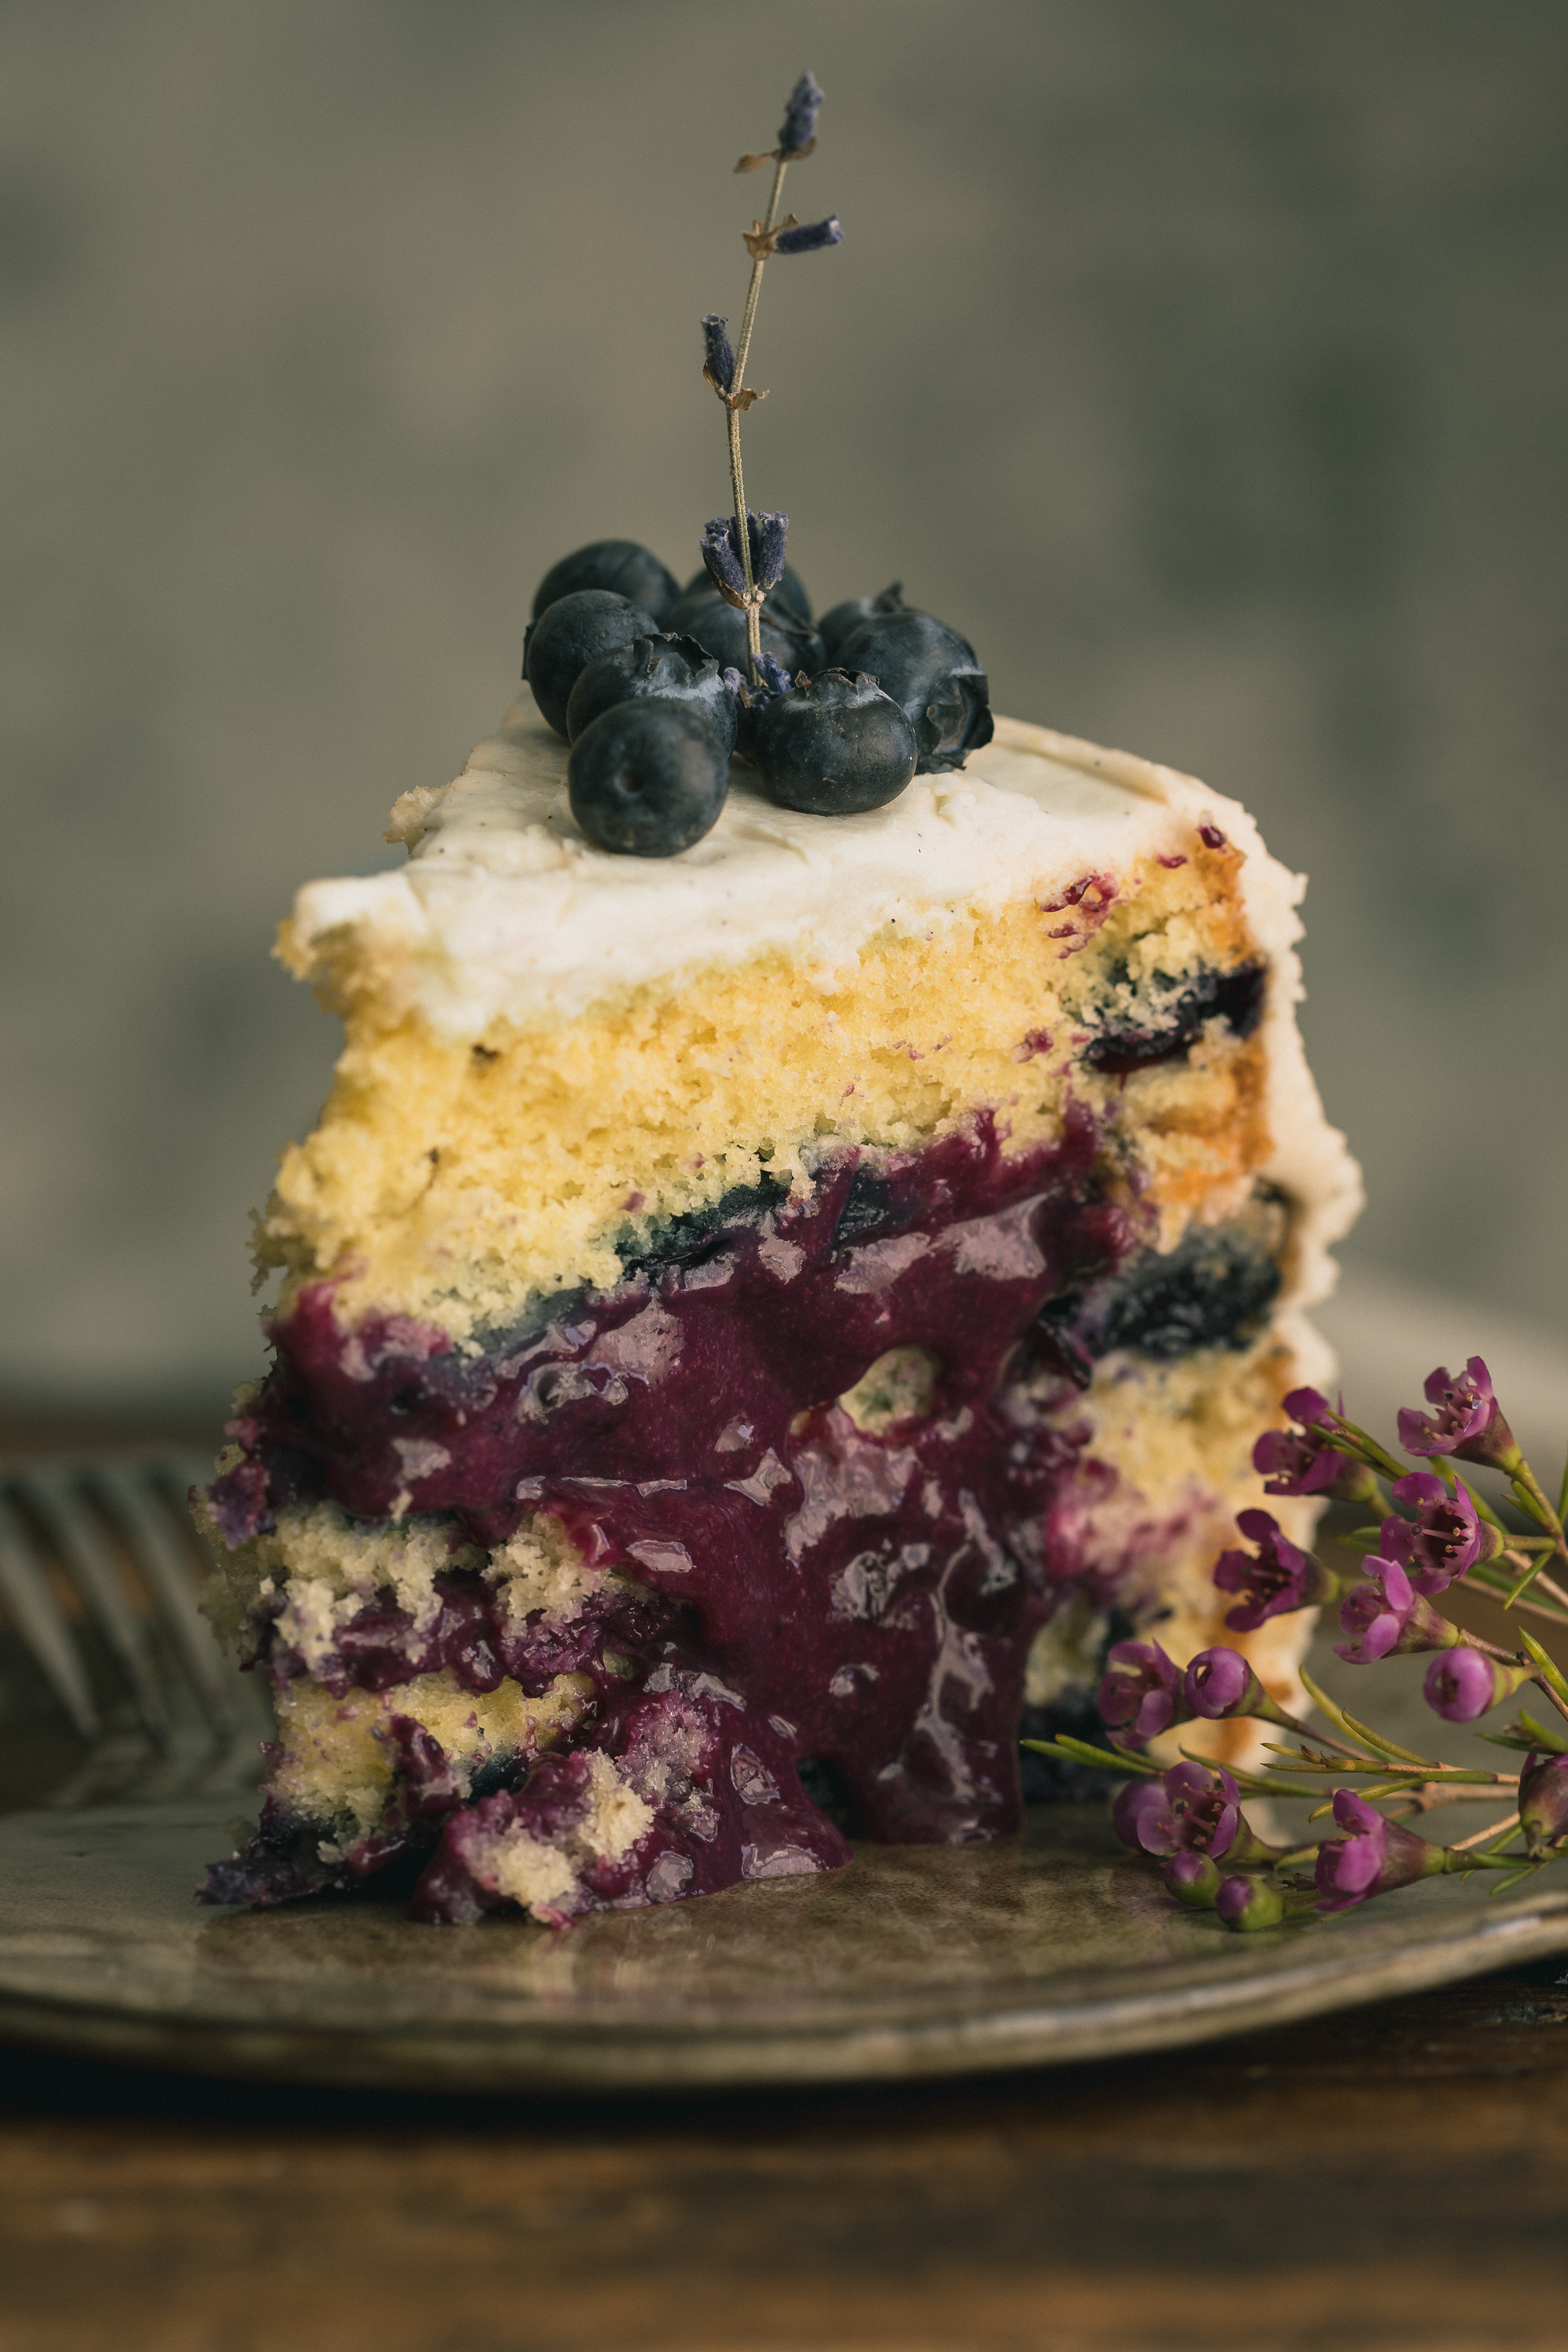 blueberry cake filling lavender blueberry cake with cheese frosting the 1968